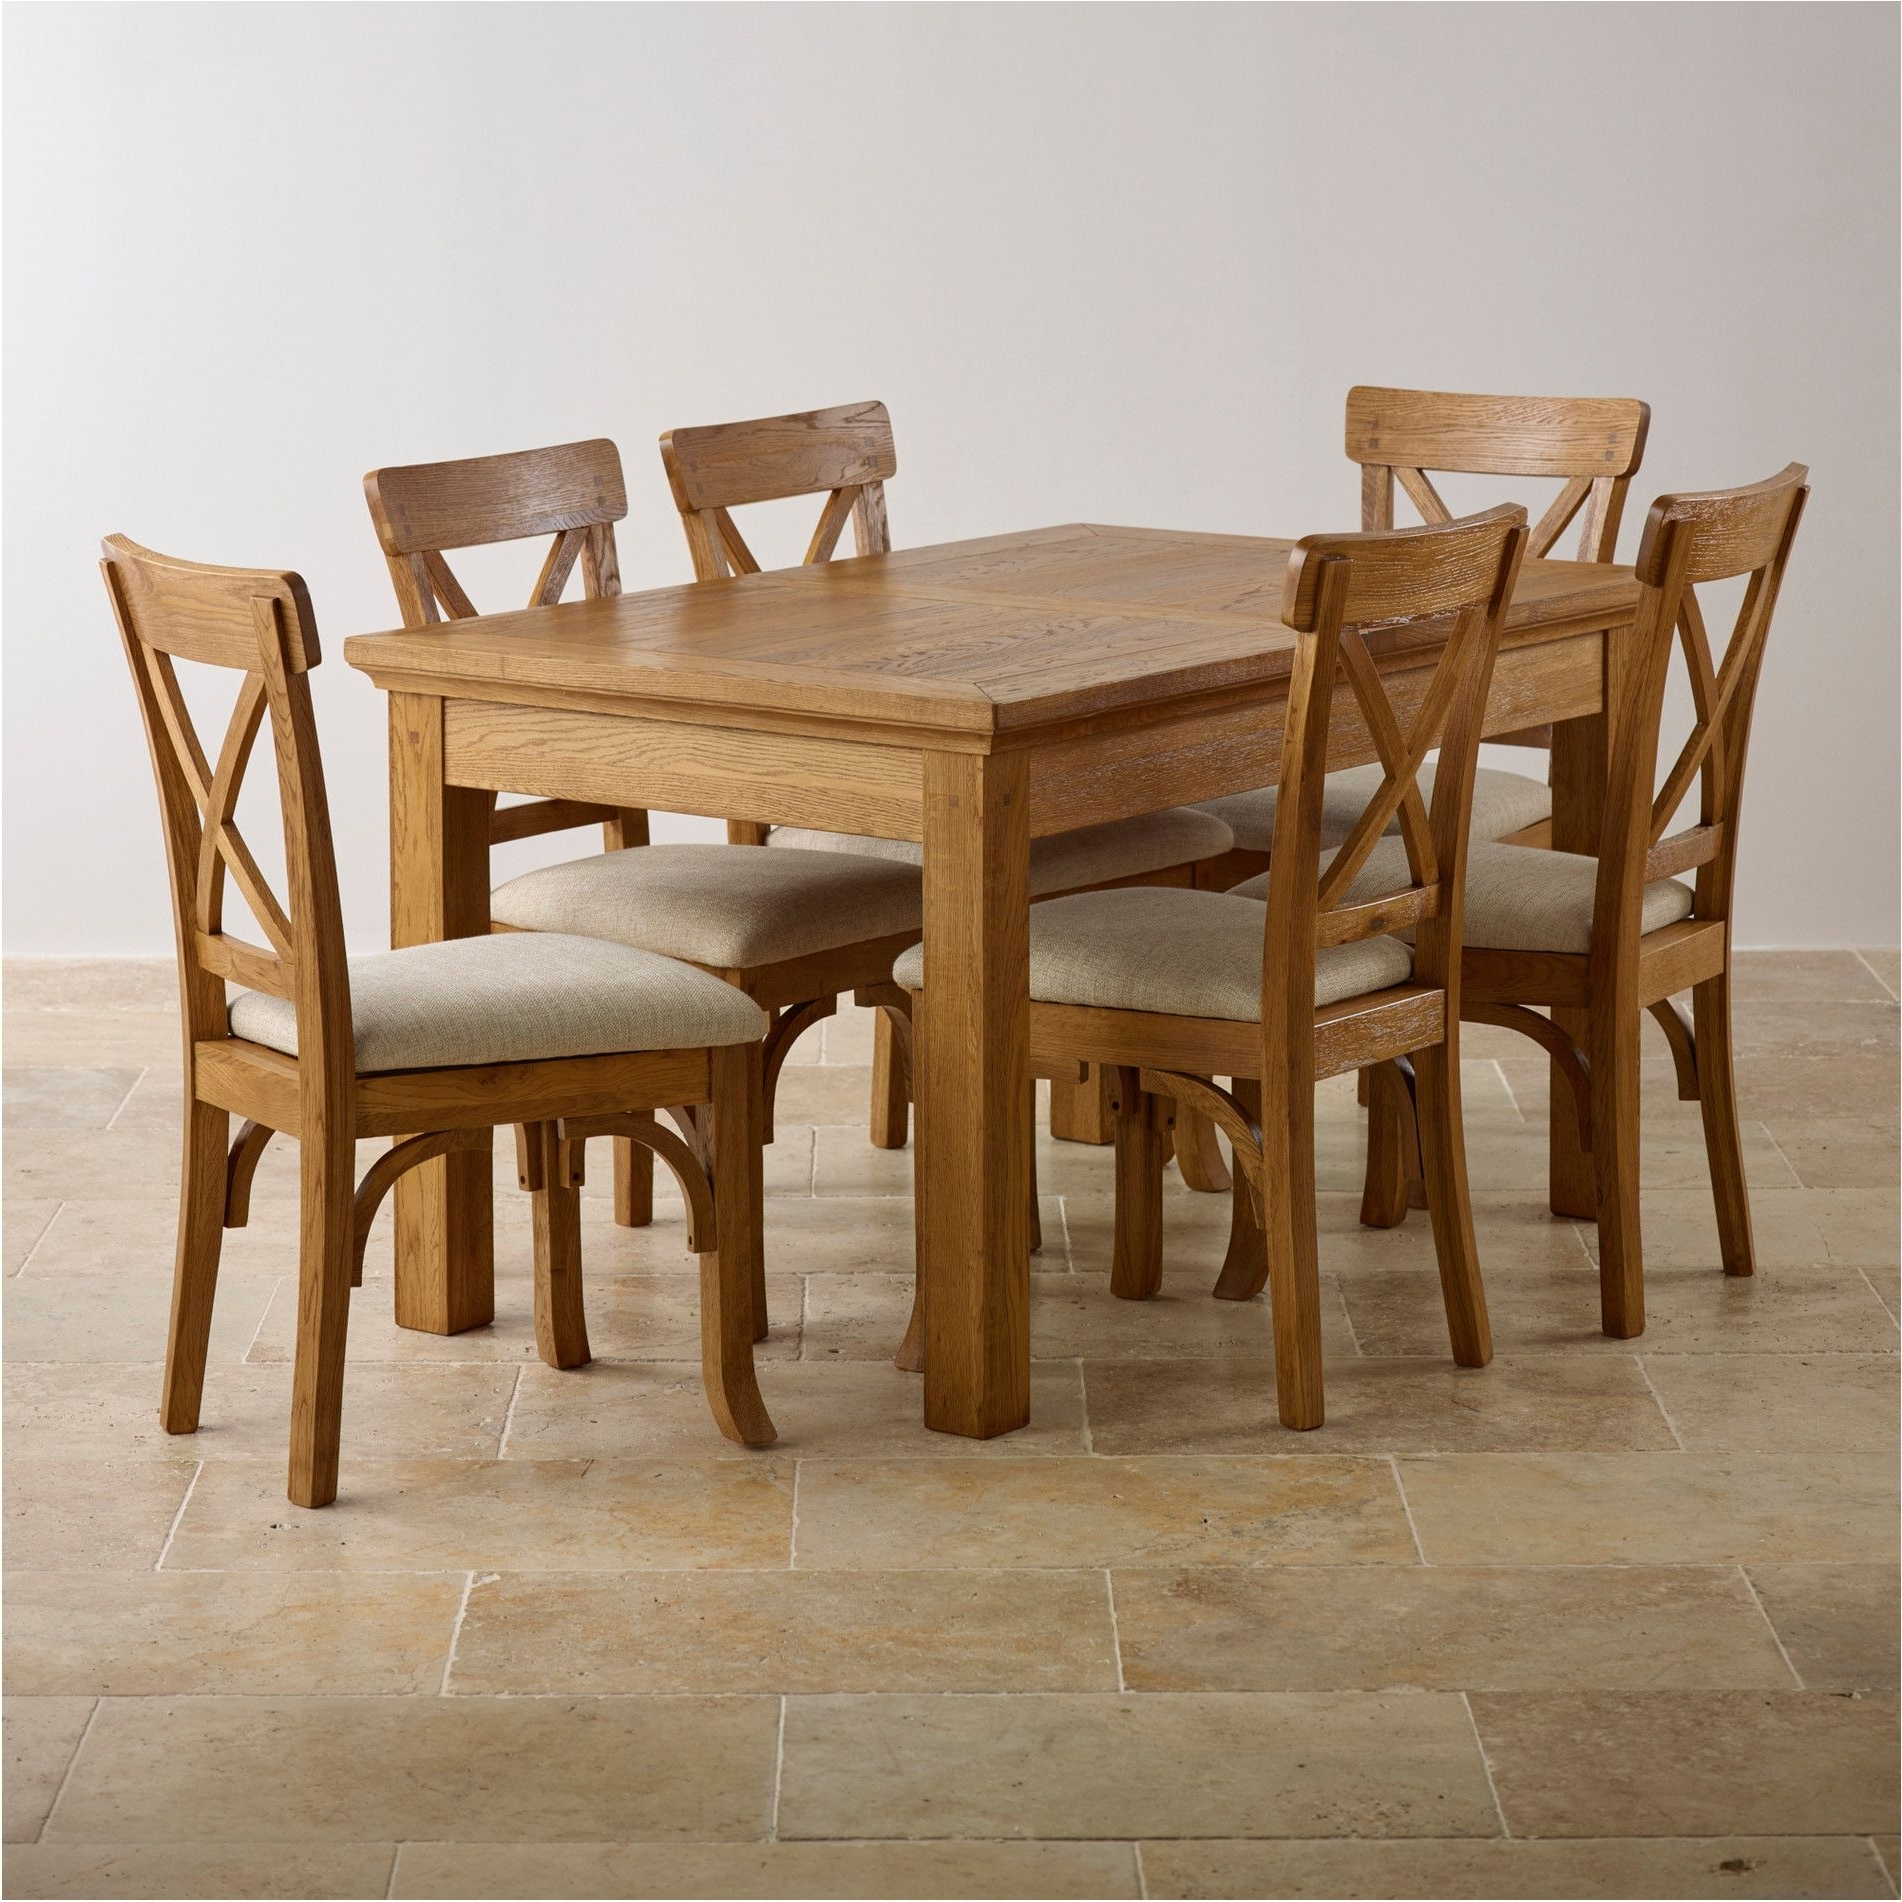 Incredible Top 72 Wicked Wooden Table Dining Room Chairs Solid Oak In Most Current Light Oak Dining Tables And Chairs (View 6 of 25)